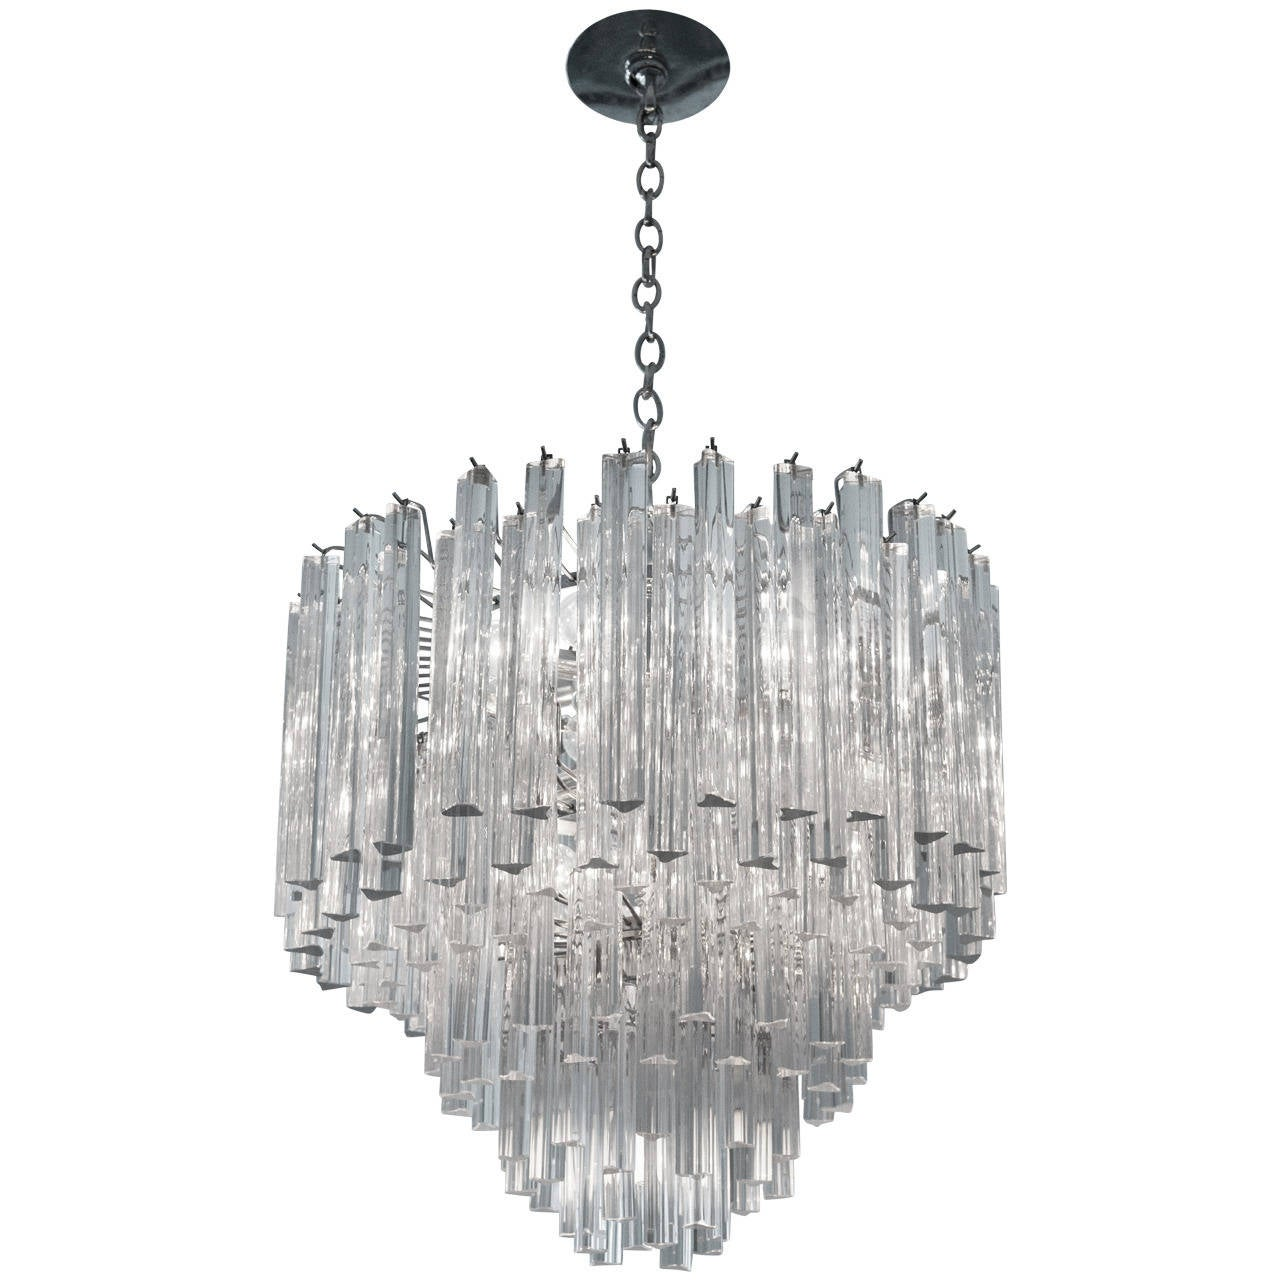 Modern italian crystal venini chandelier by camer at 1stdibs modern italian crystal venini chandelier by camer for sale aloadofball Images